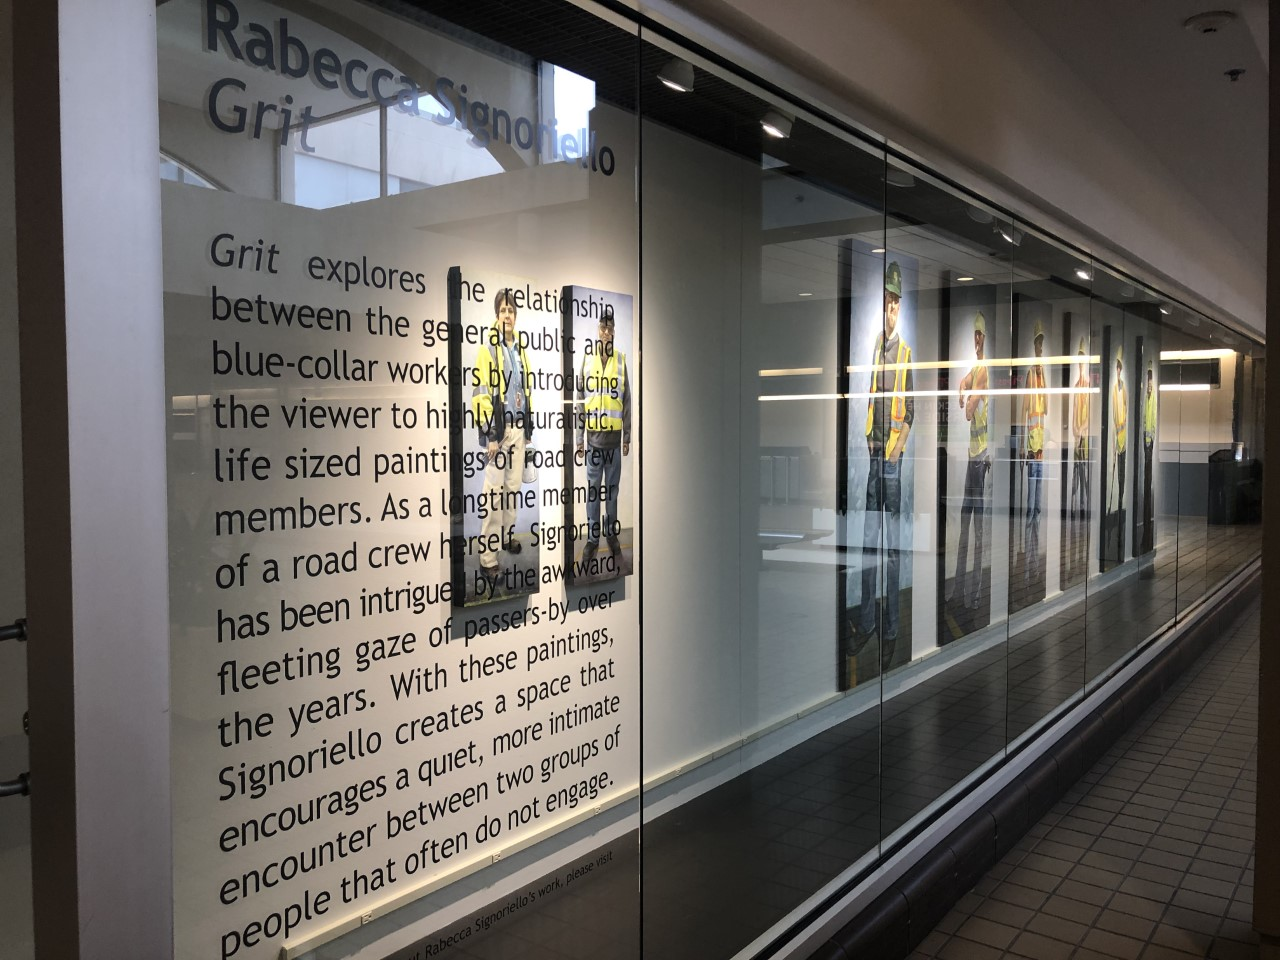 Installation of Grit at The Pittsburgh International Airport